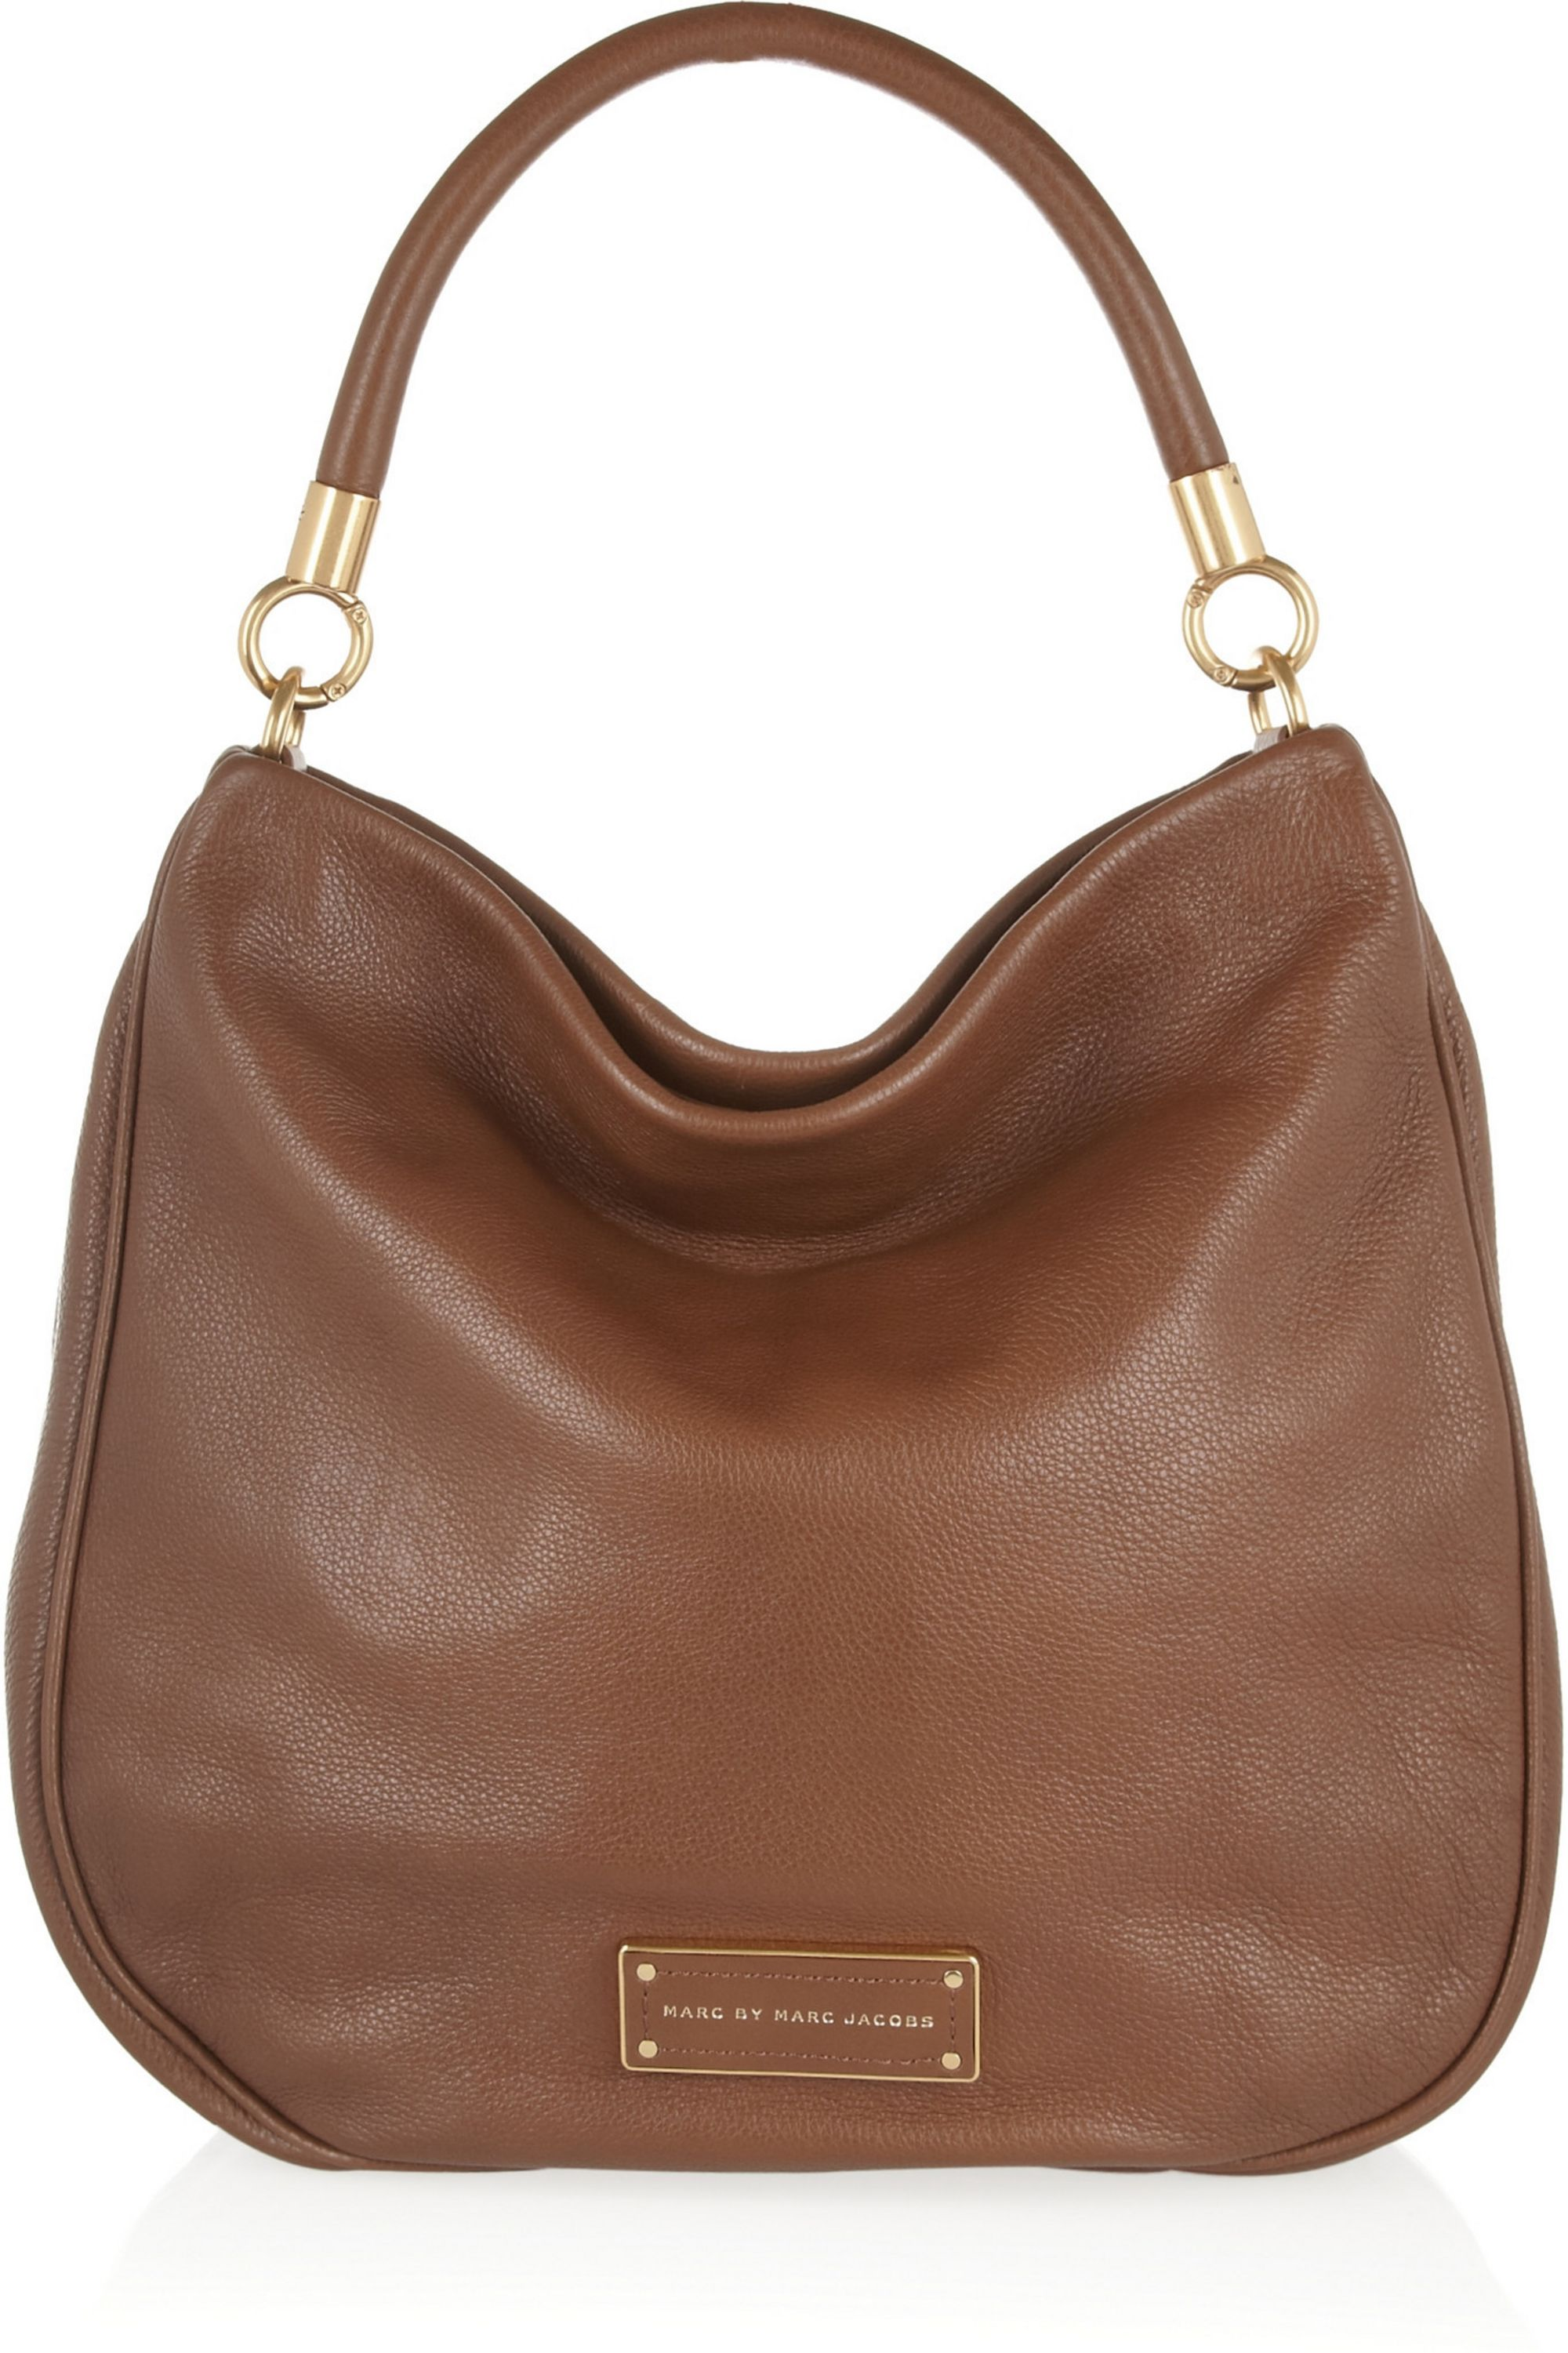 Marc by Marc Jacobs Too Hot to Handle leather shoulder bag